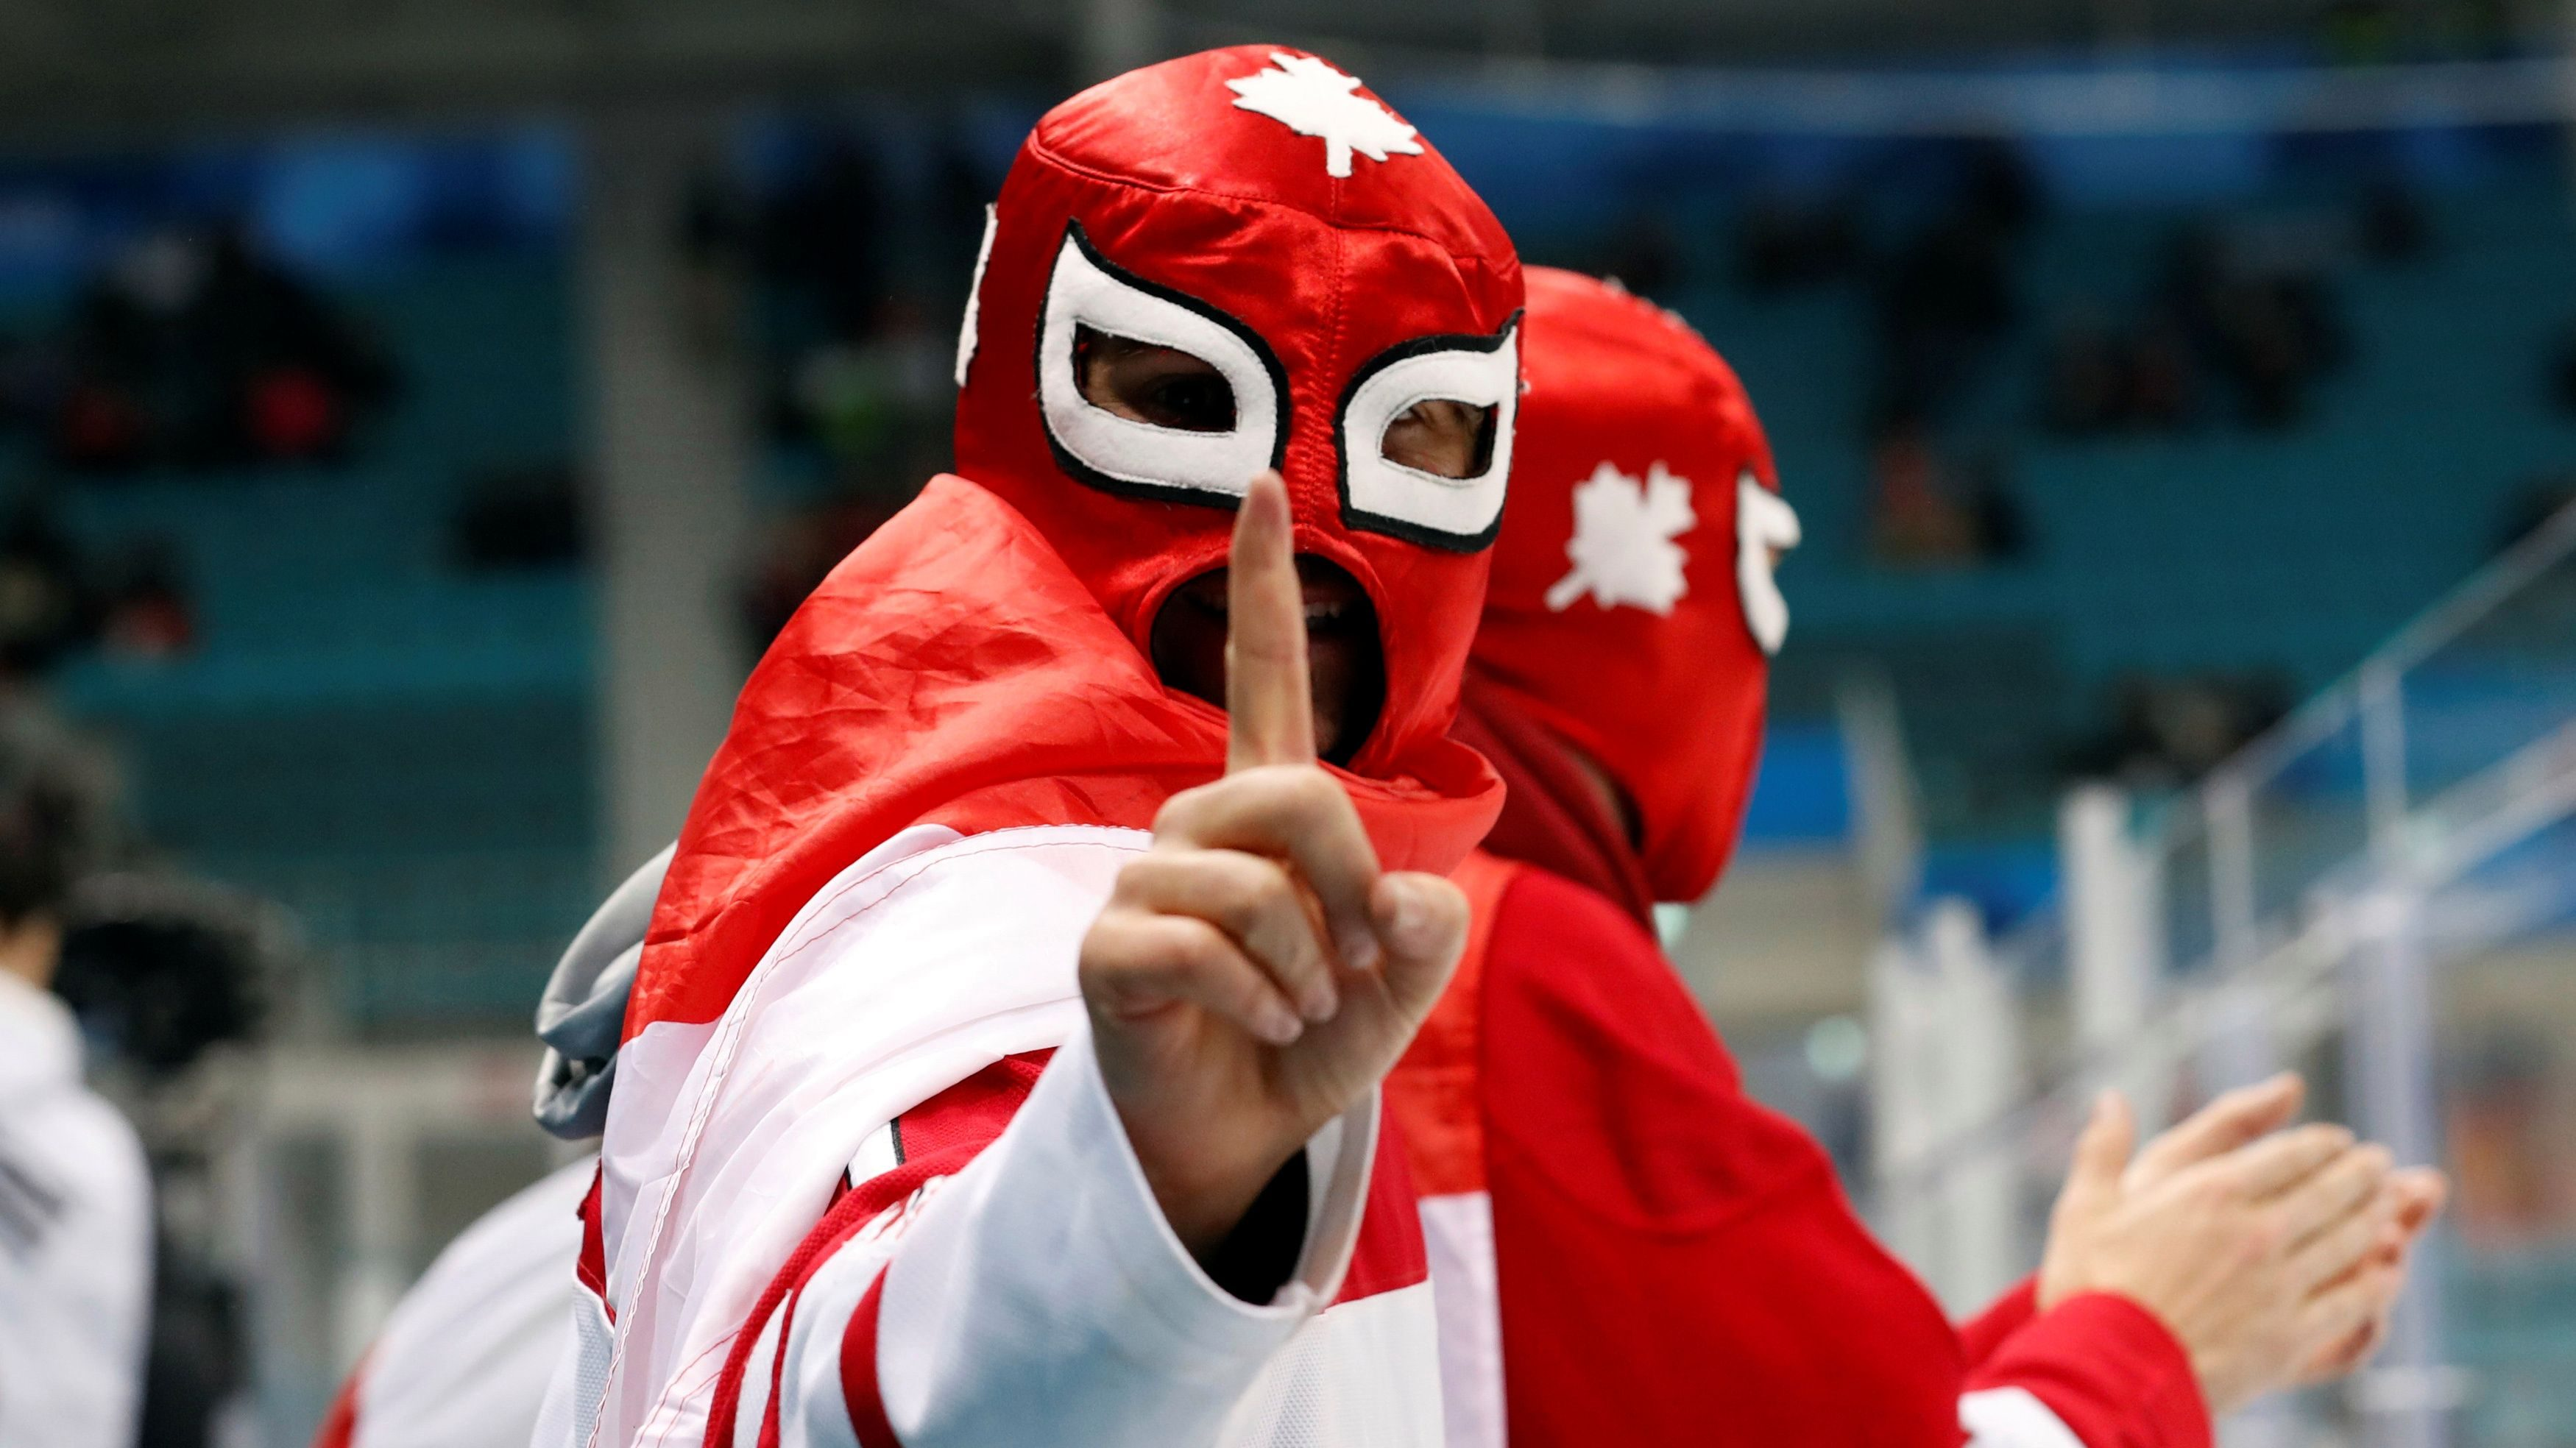 Ice Hockey - Pyeongchang 2018 Winter Olympics - Men Semifinal Match - Canada v Germany - Gangneung Hockey Centre, Gangneung, South Korea - February 23, 2018 - Fans of Team Canada react. REUTERS/Kim Kyung-Hoon - HP1EE2N0XI87O